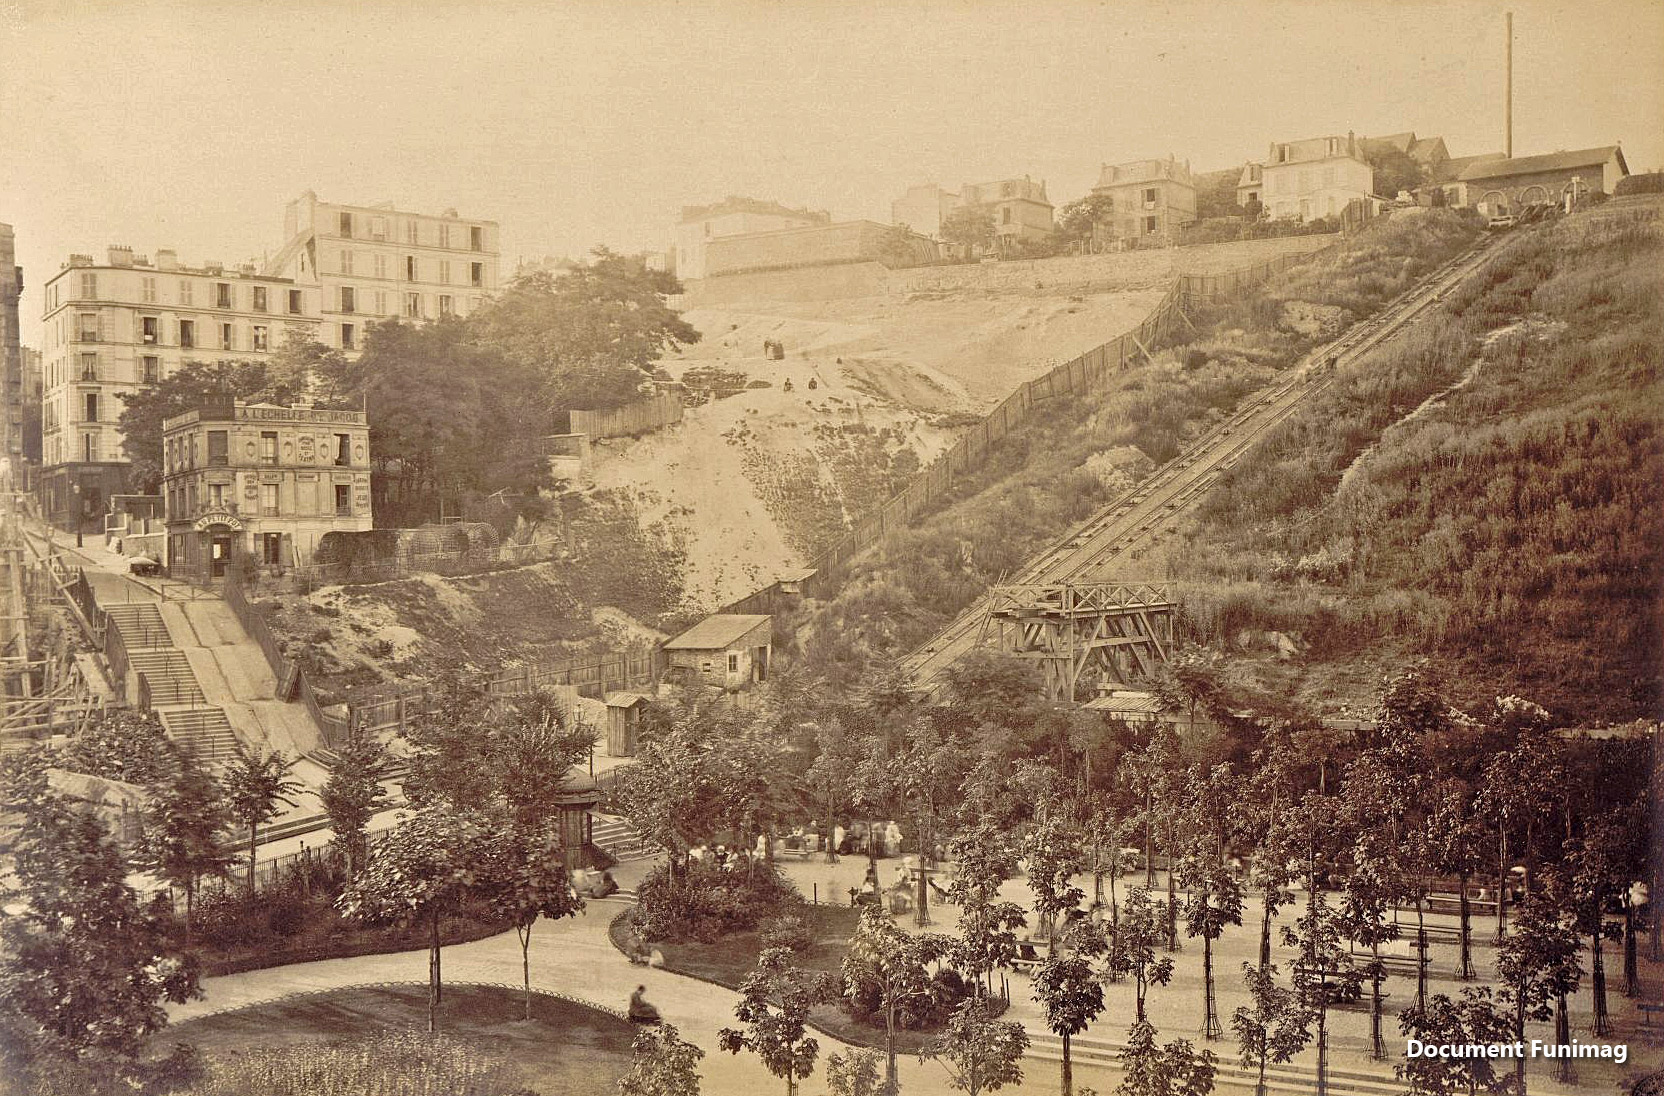 Vue générale du funiculaire en 1877 / General view of the funicular in 1877